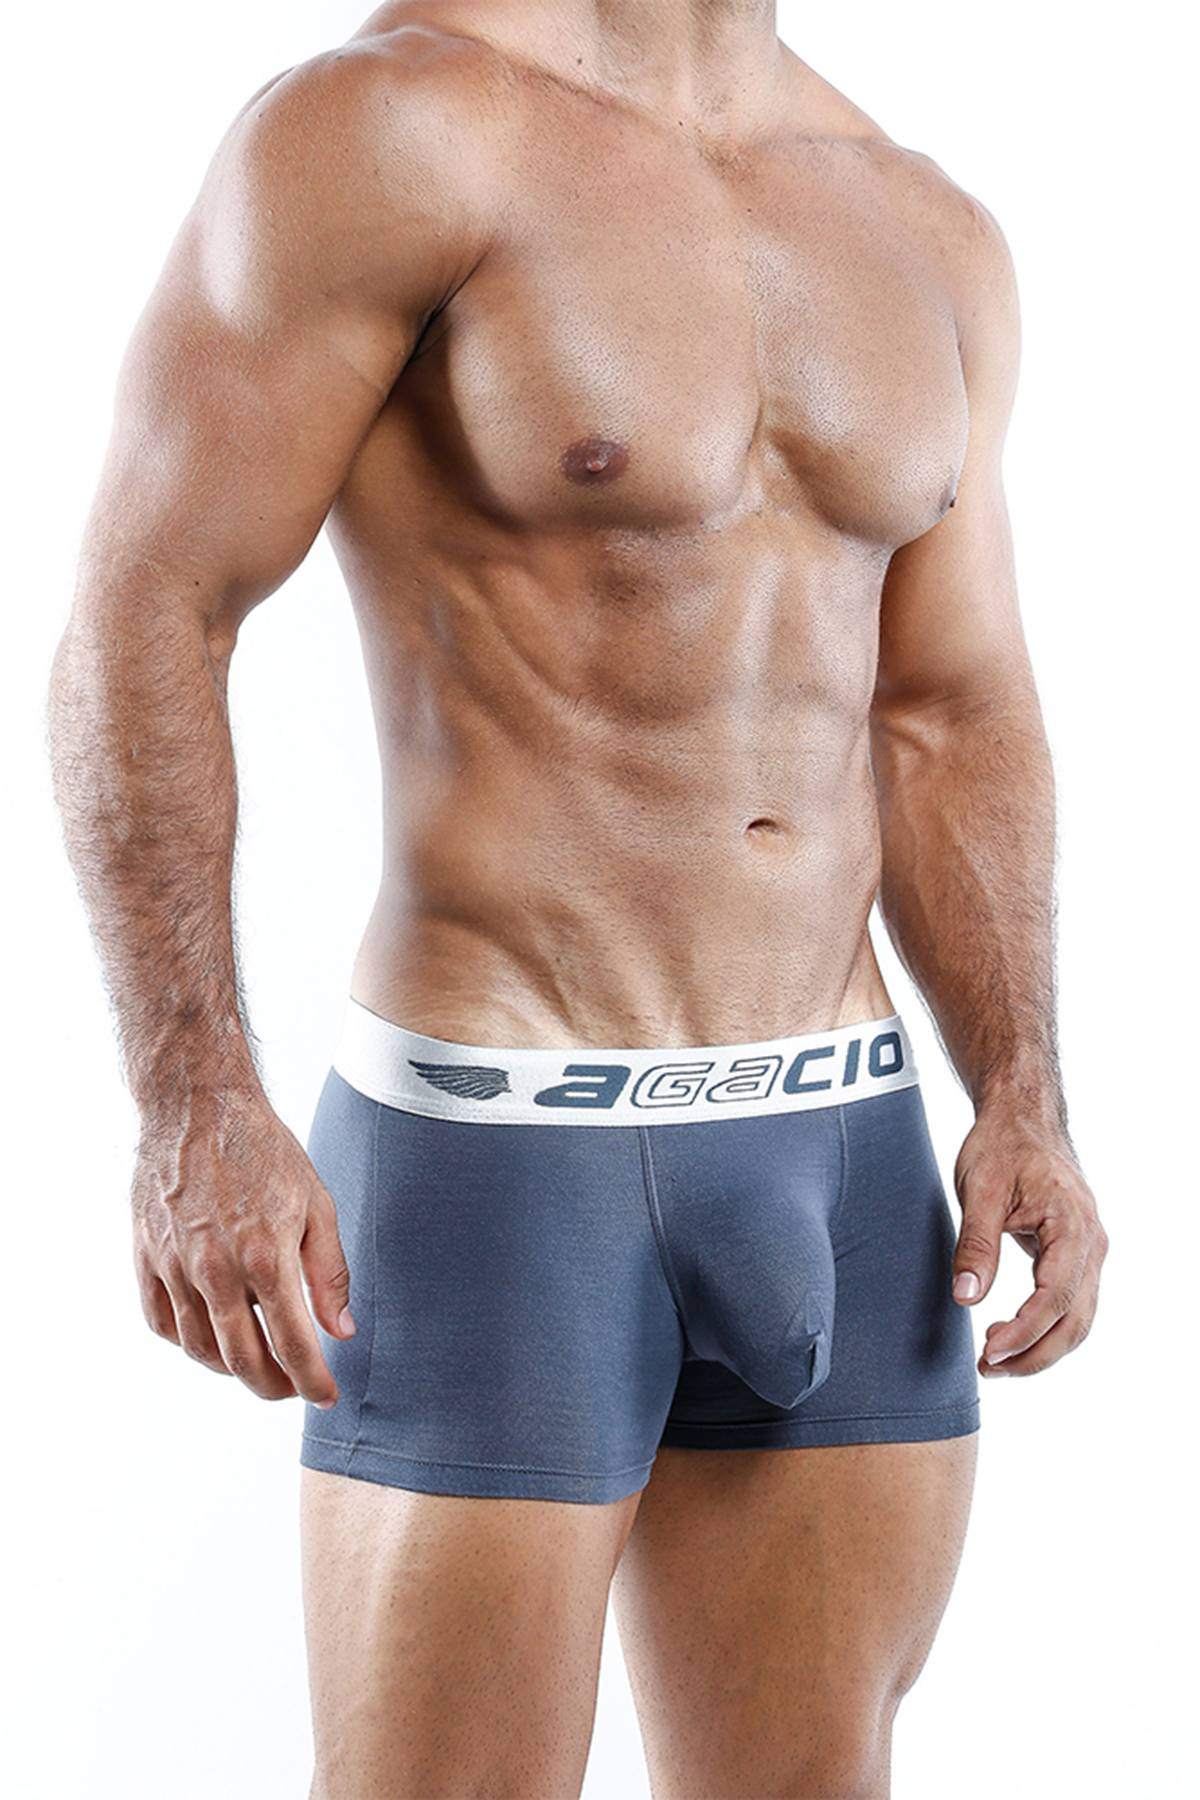 Agacio Lightweight Maximum Comfort Trunk in Grey